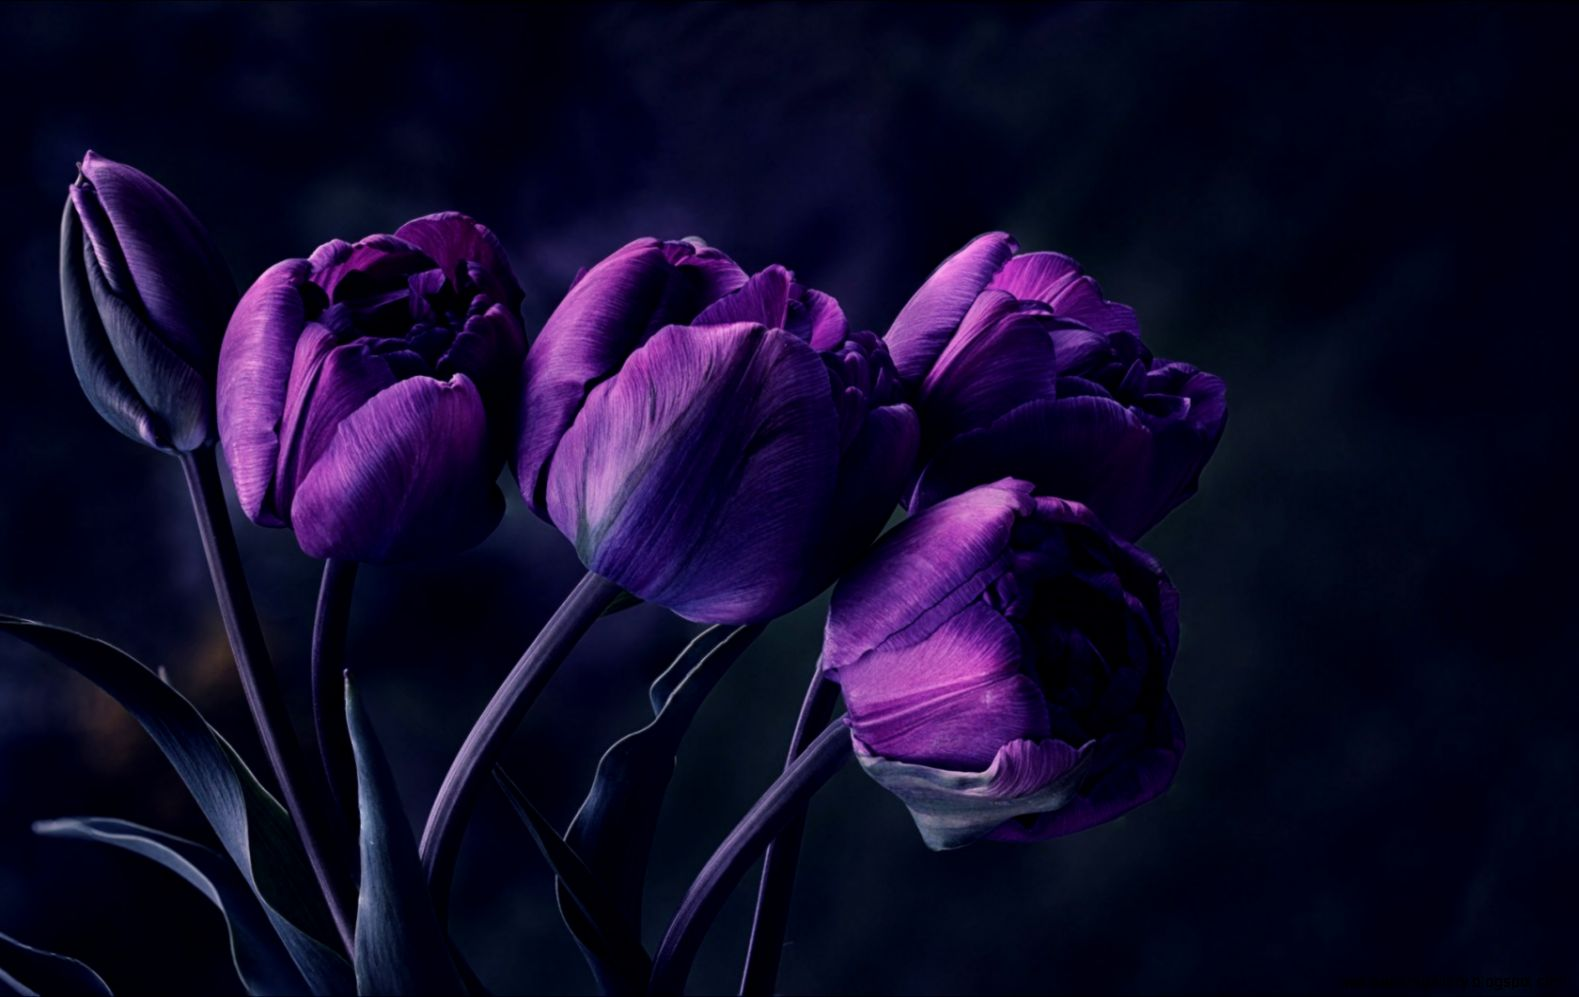 Dark Purple Flower Wallpaper | Wallpapers Gallery